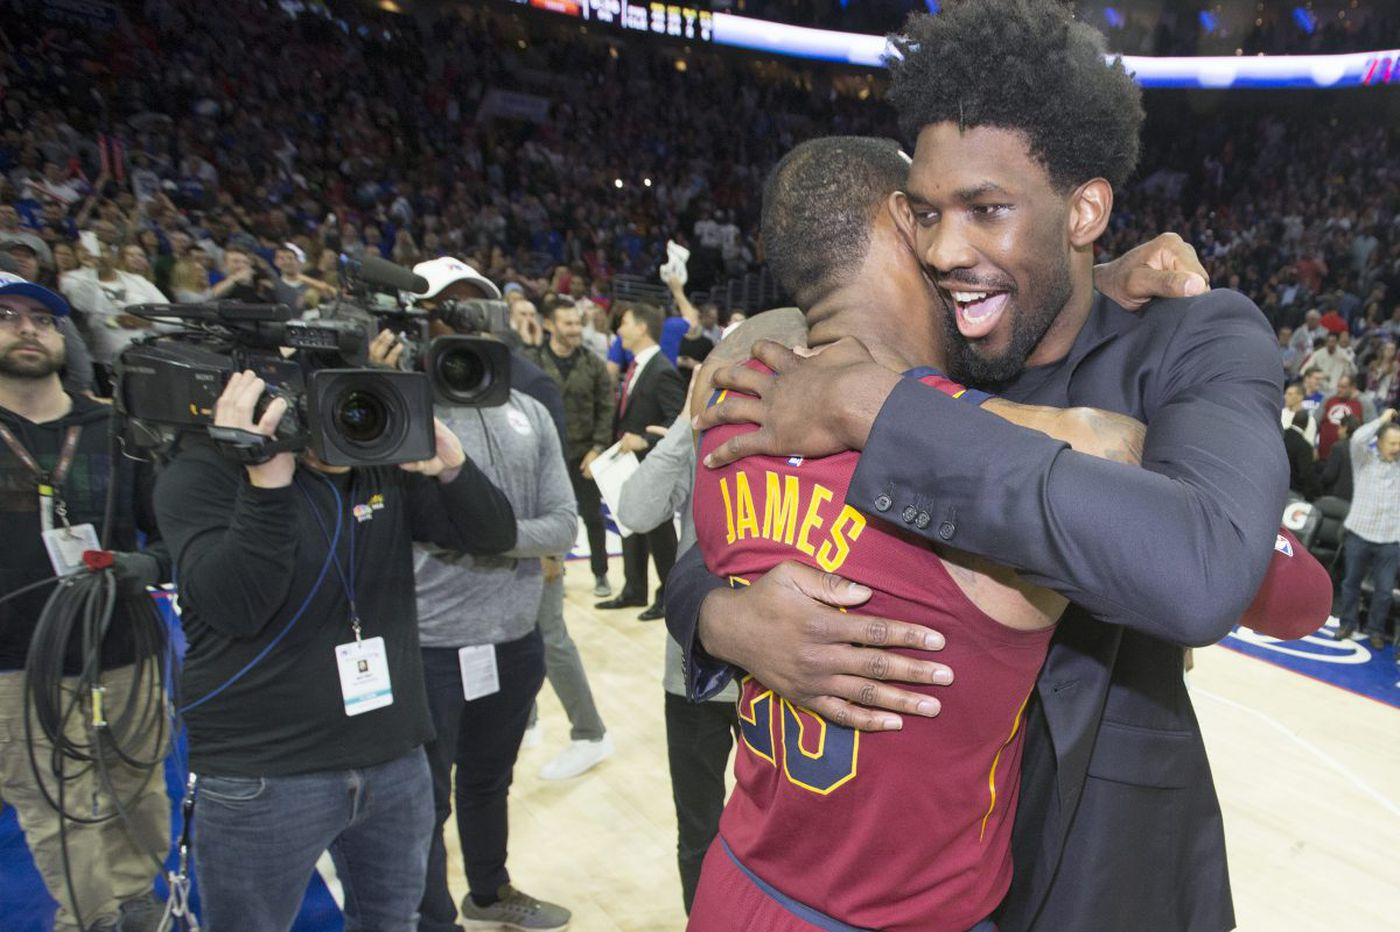 b6378722c96 Joel Embiid says he s ready to help Sixers recruit top free agents this  offseason